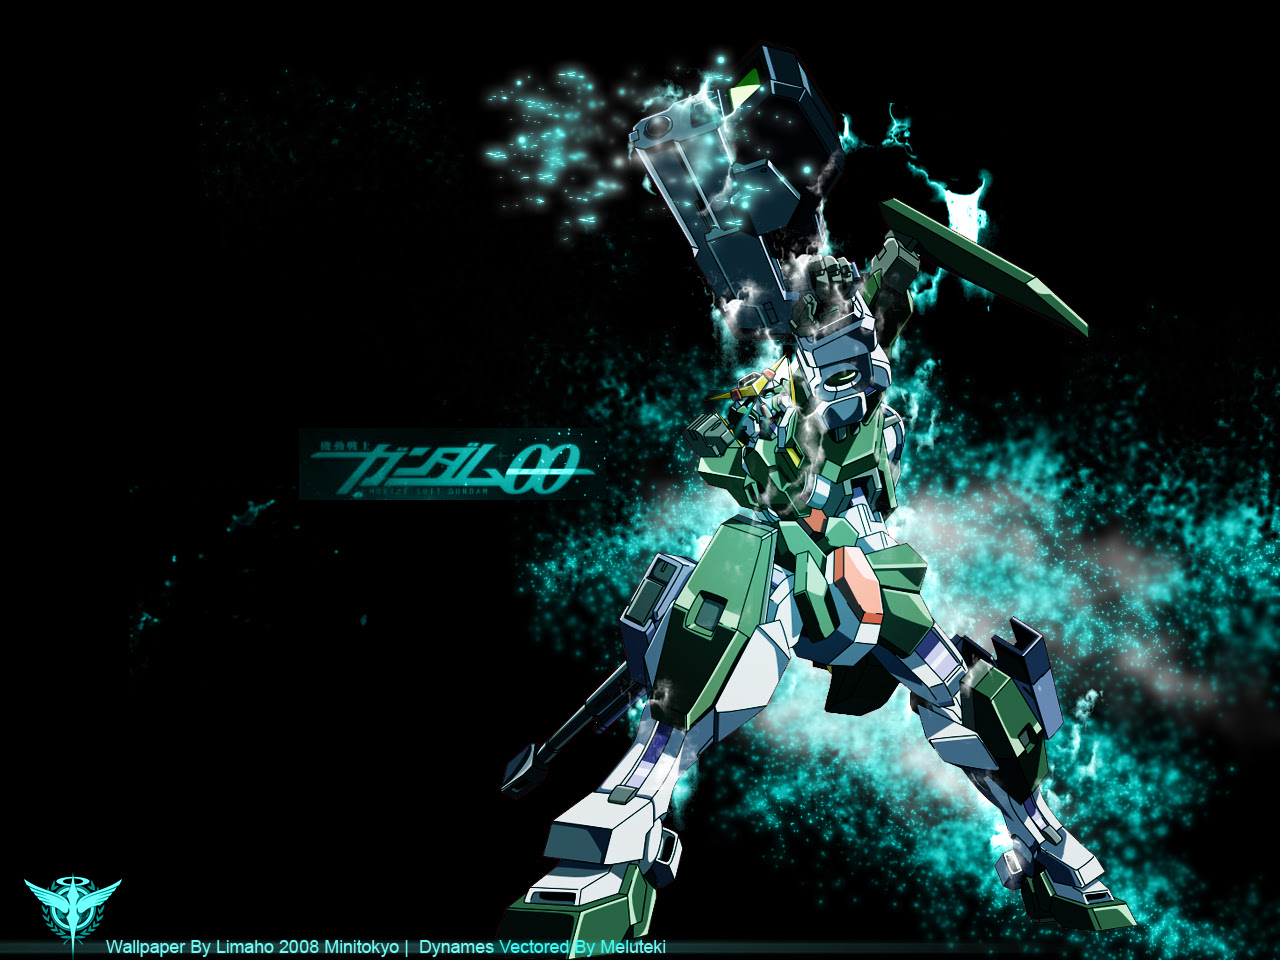 Mobile Suit Gundam 00 Wallpaper One Last Shoot Minitokyo